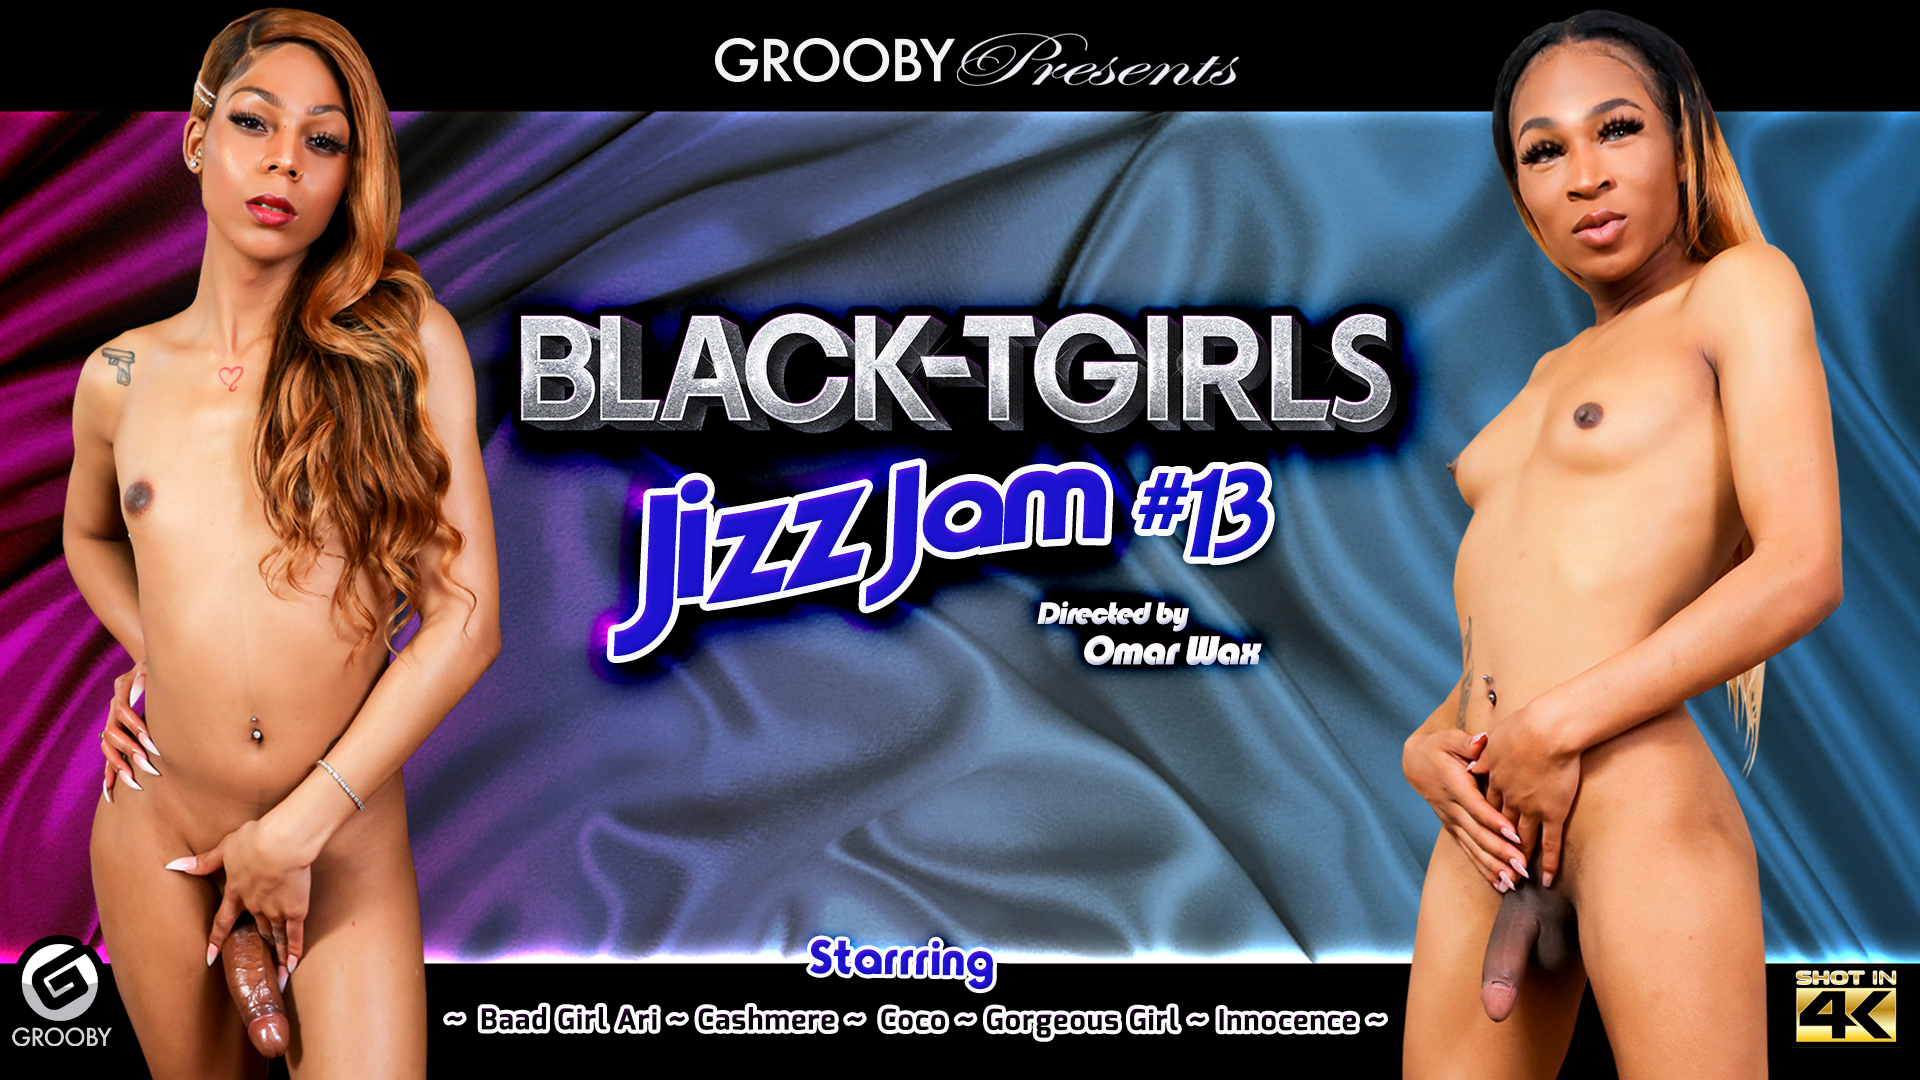 Black-Tgirls Jizz Jam # 13 DVD Trailer